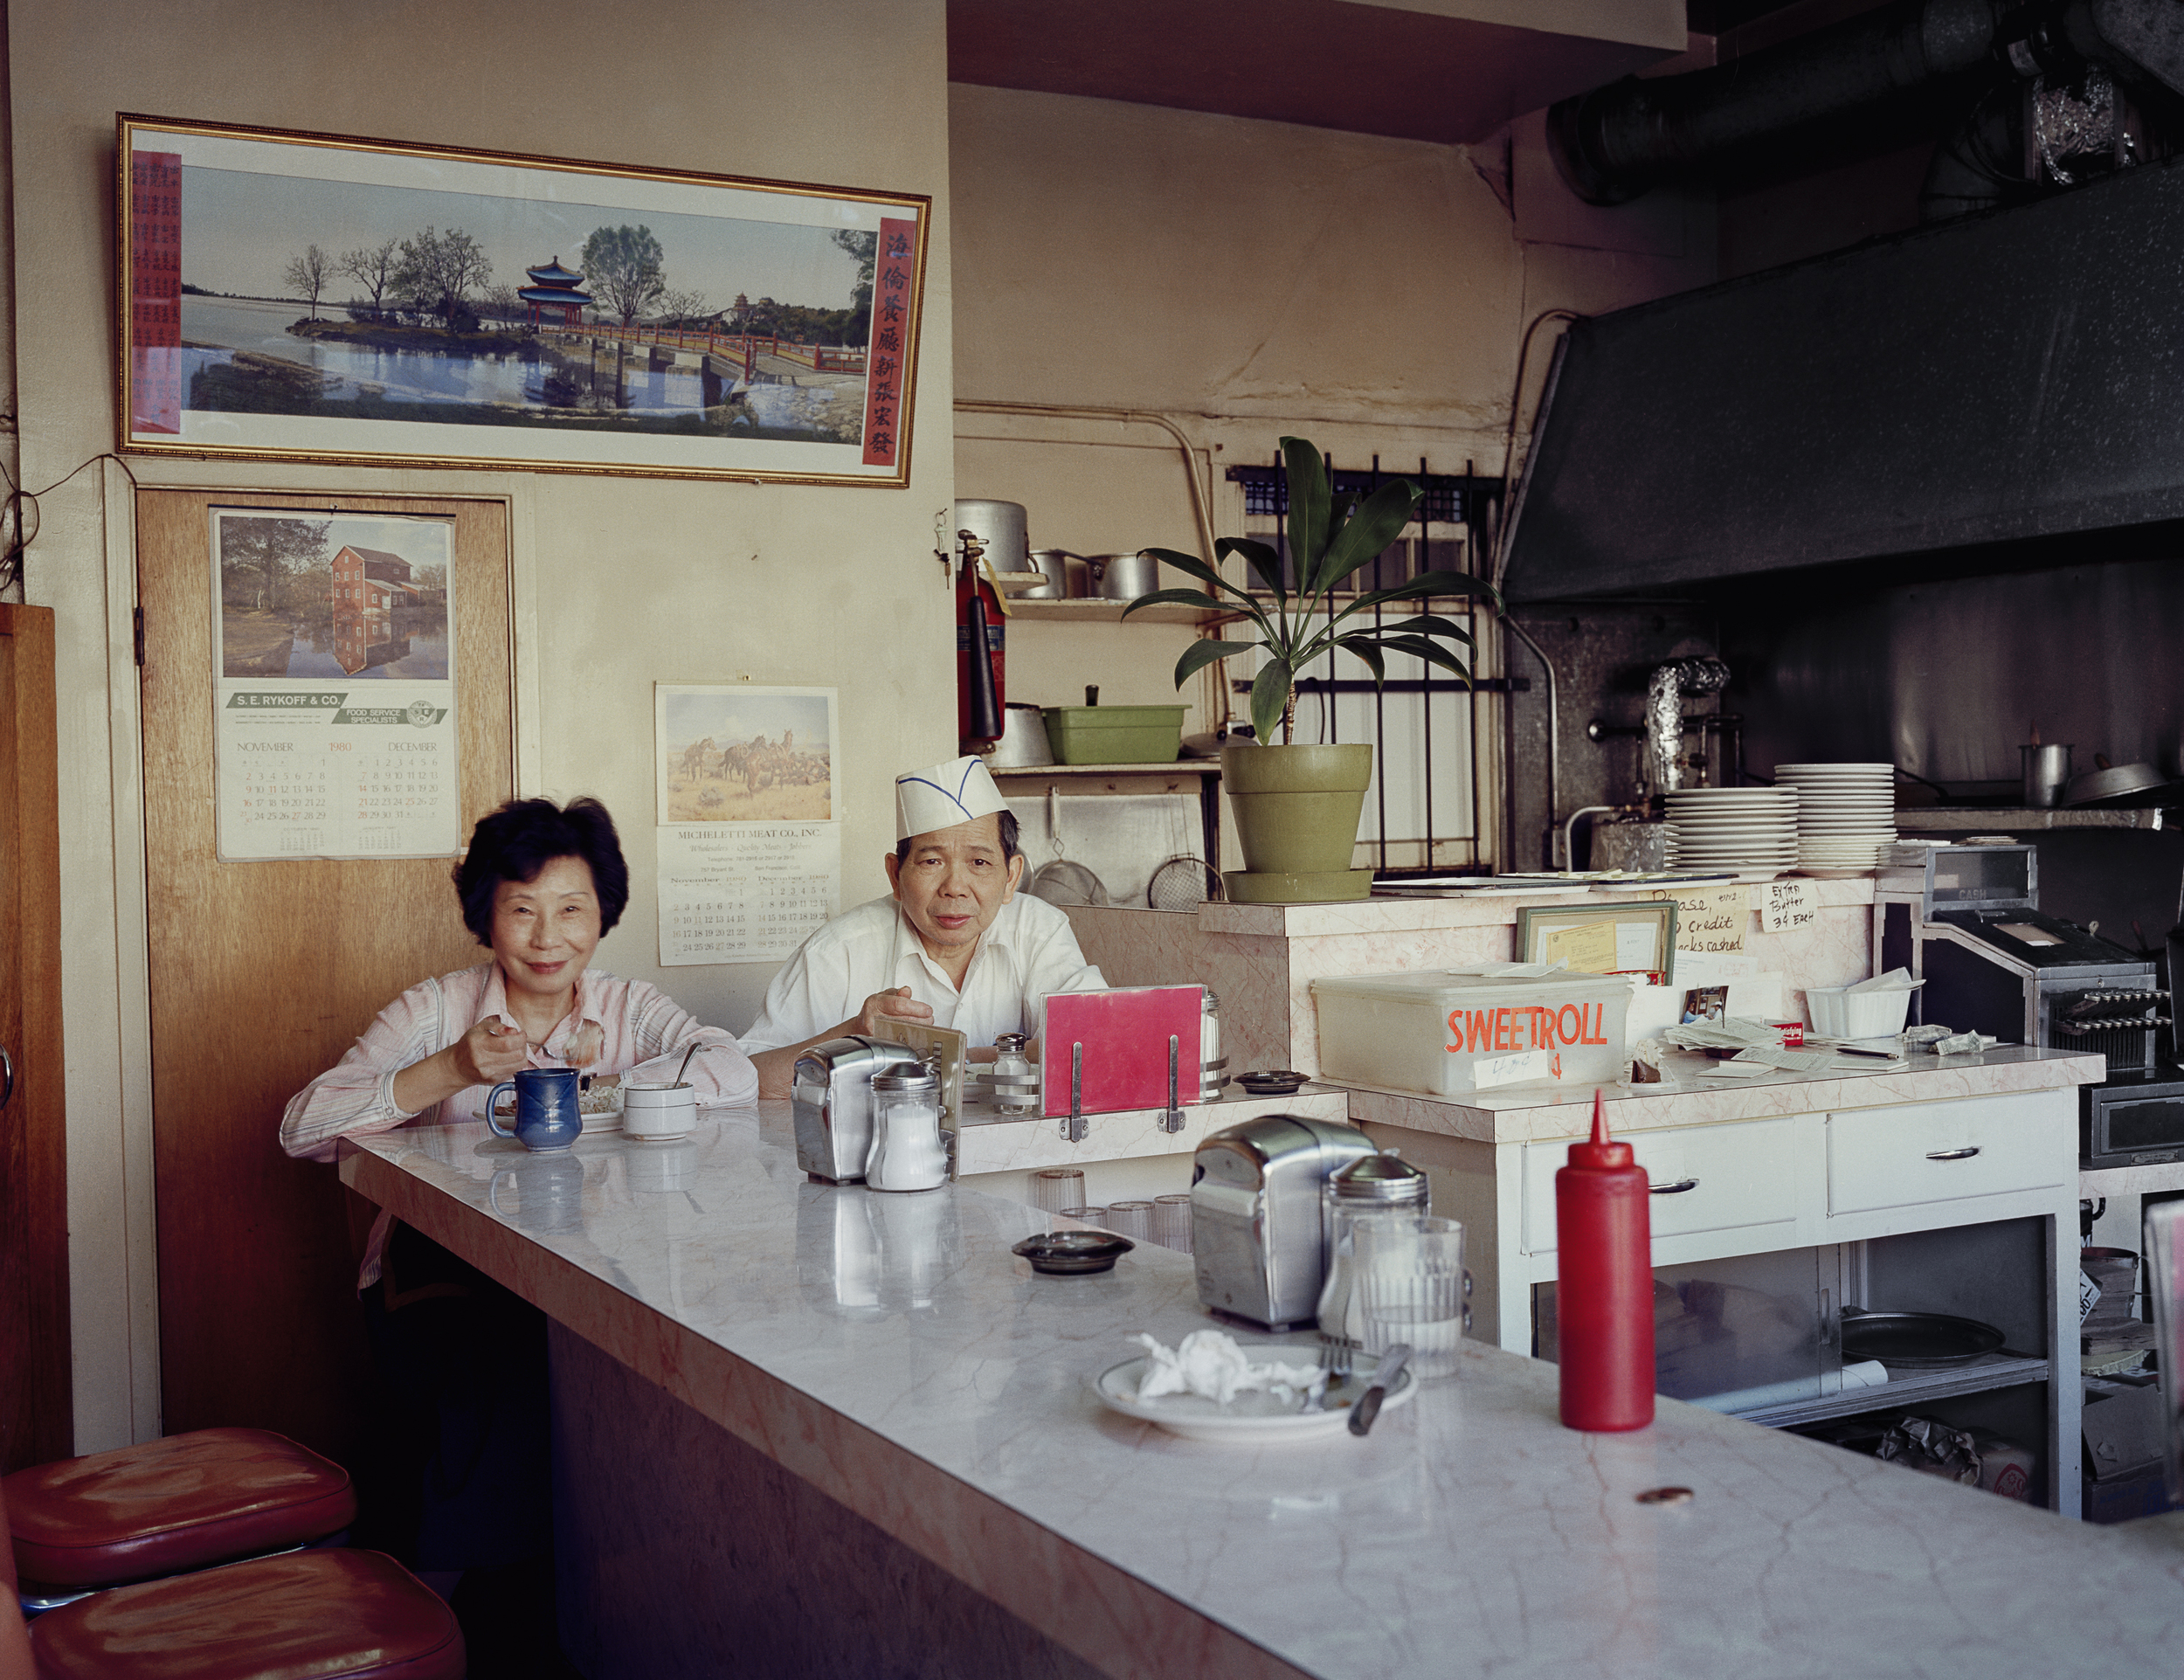 Helen and her husband Chester, at the Helen Café, 486 6th Street, 1980 Archival Pigment Print, 2016 16 x 20 inches, edition of 5 20 x 24 inches, edition of 2 30 x 40 inches, edition of 2